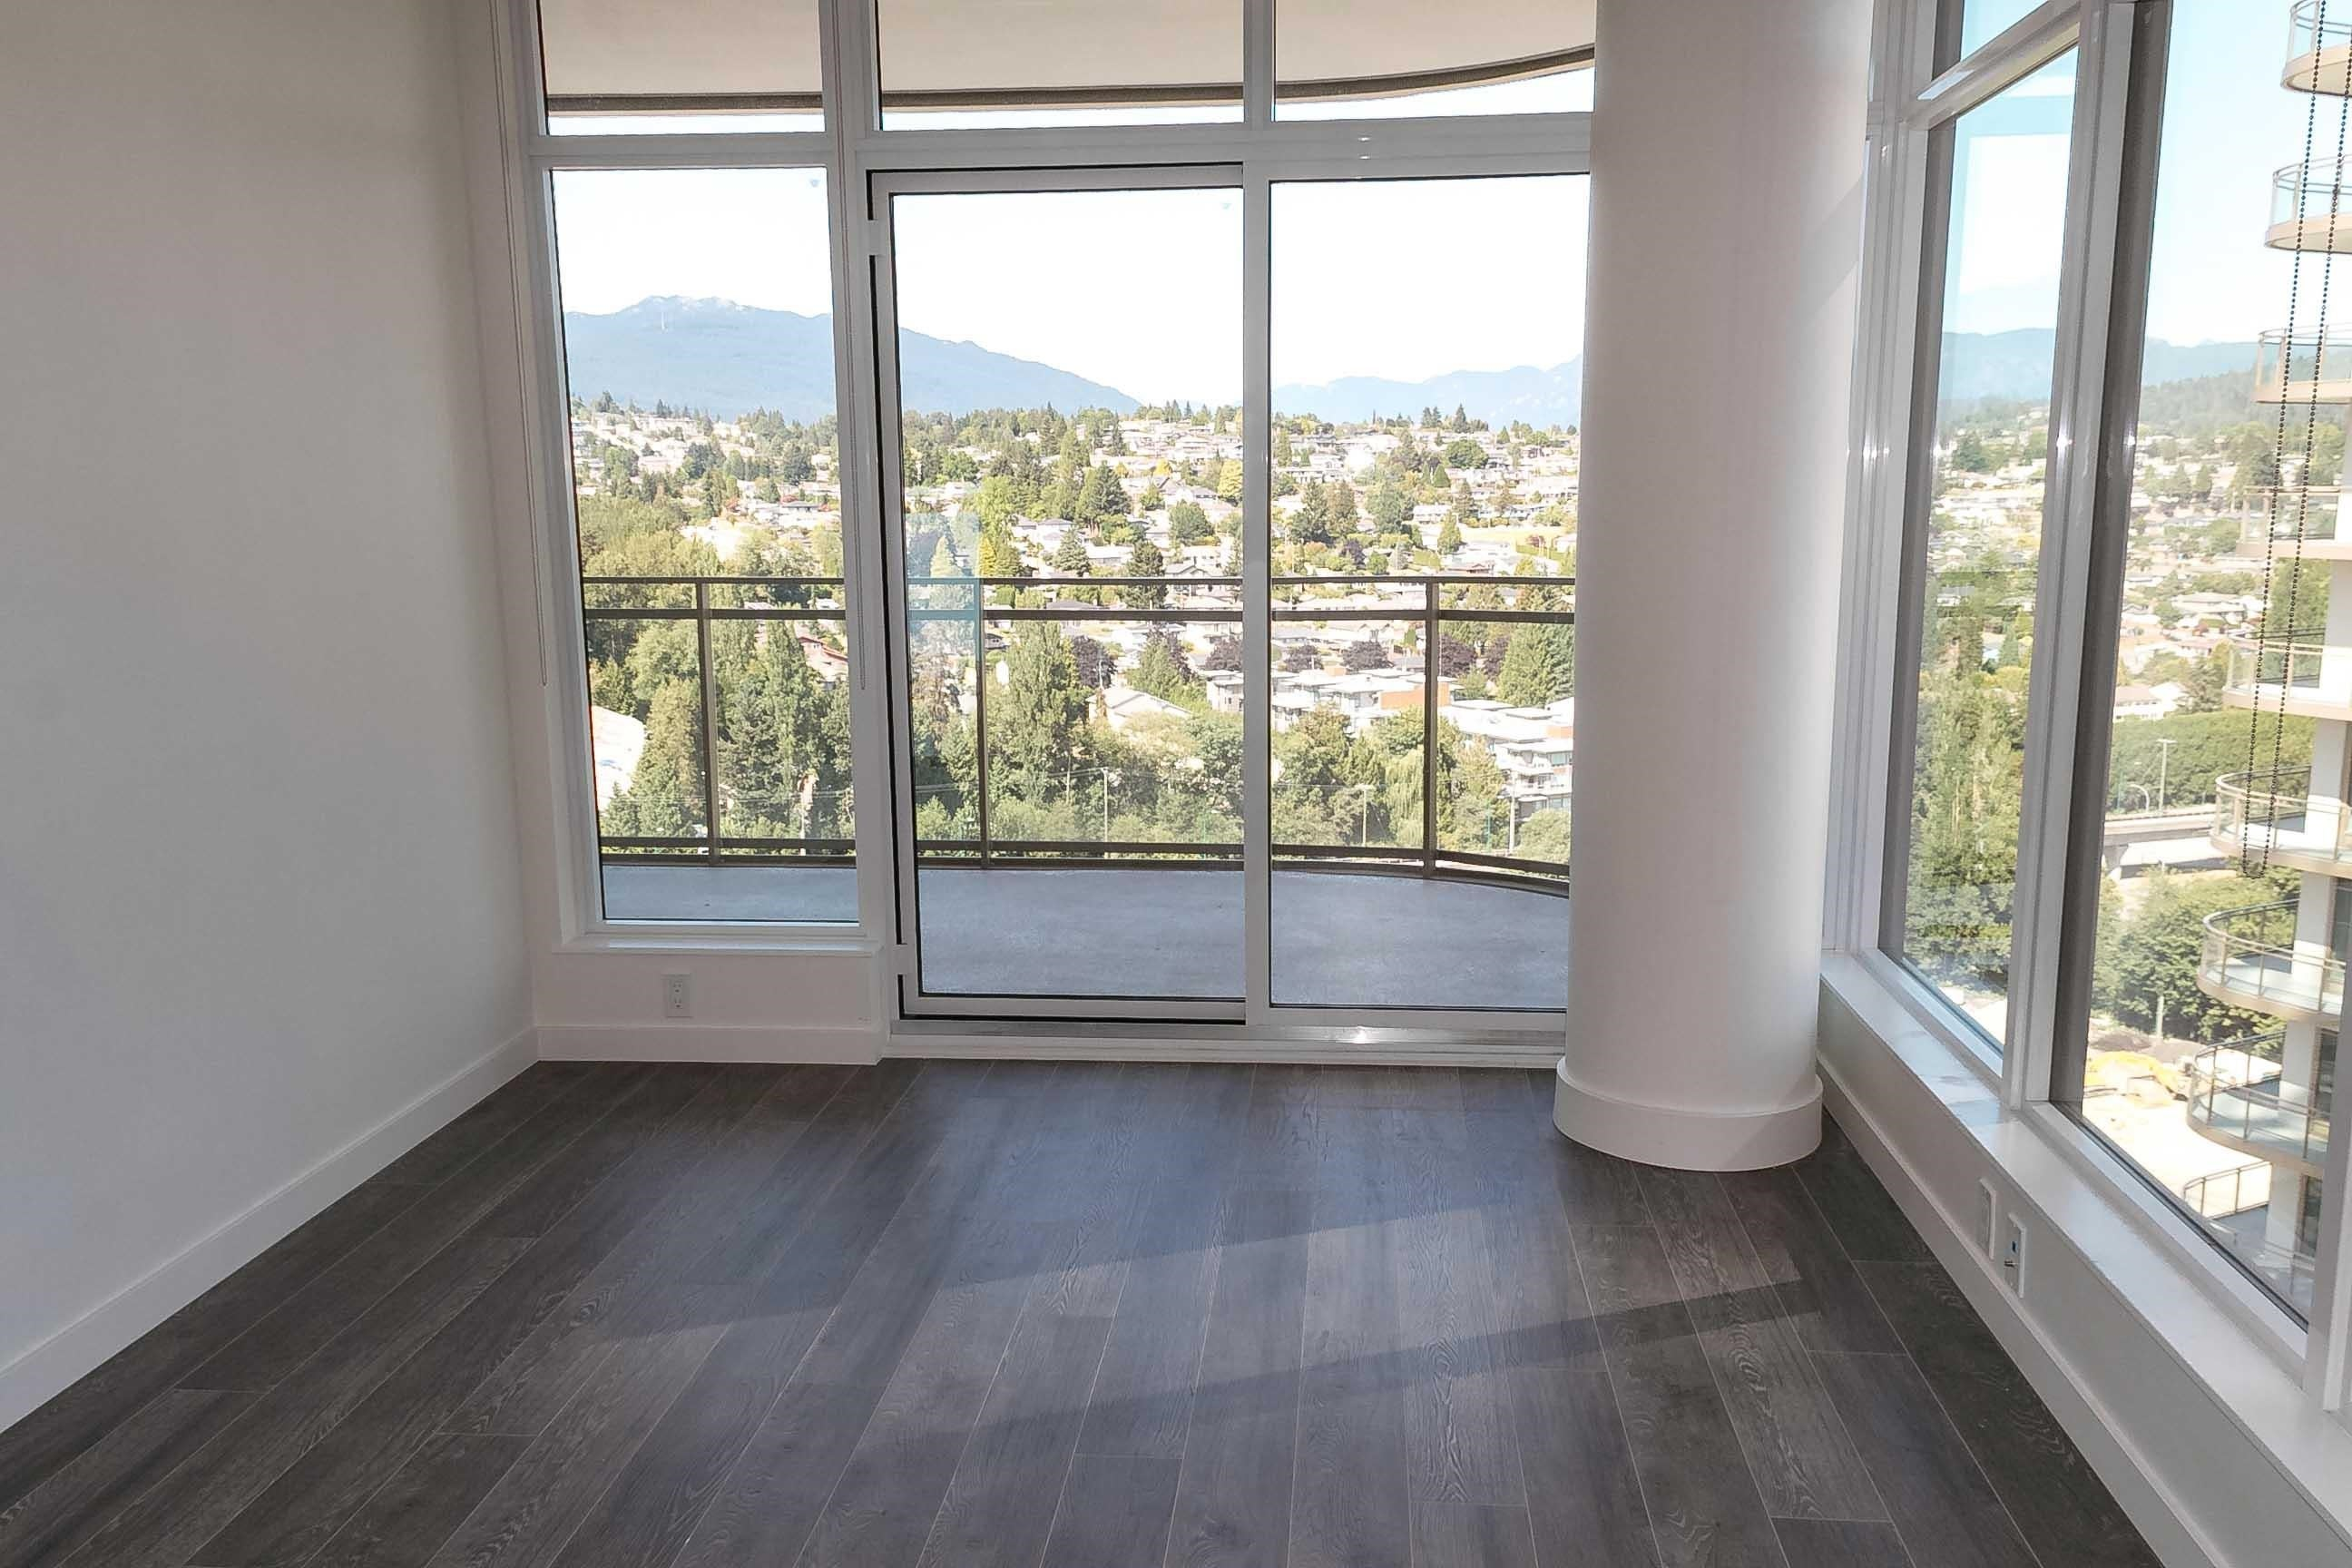 1903 5311 GORING STREET - Brentwood Park Apartment/Condo for sale, 1 Bedroom (R2627501) - #1